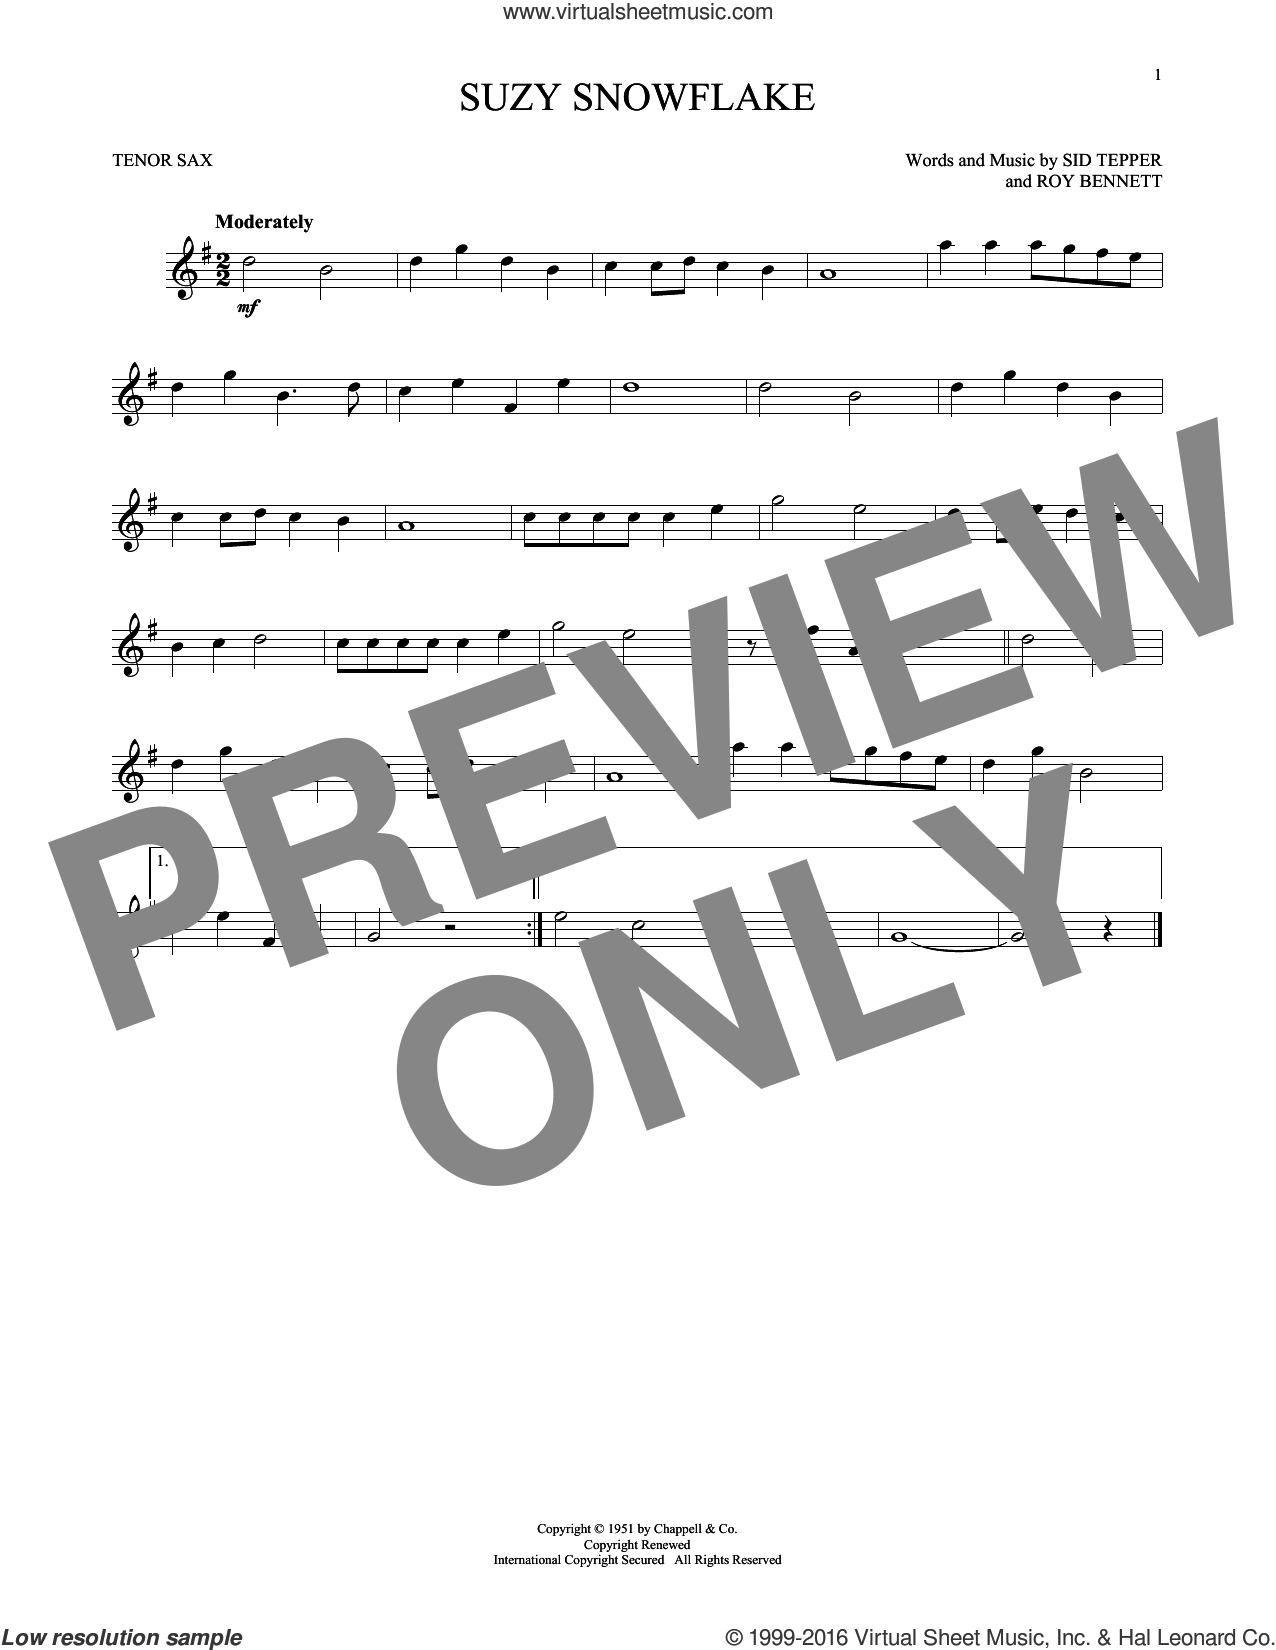 Suzy Snowflake sheet music for tenor saxophone solo by Sid Tepper, Roy Bennett and Sid Tepper and Roy Bennett, intermediate skill level